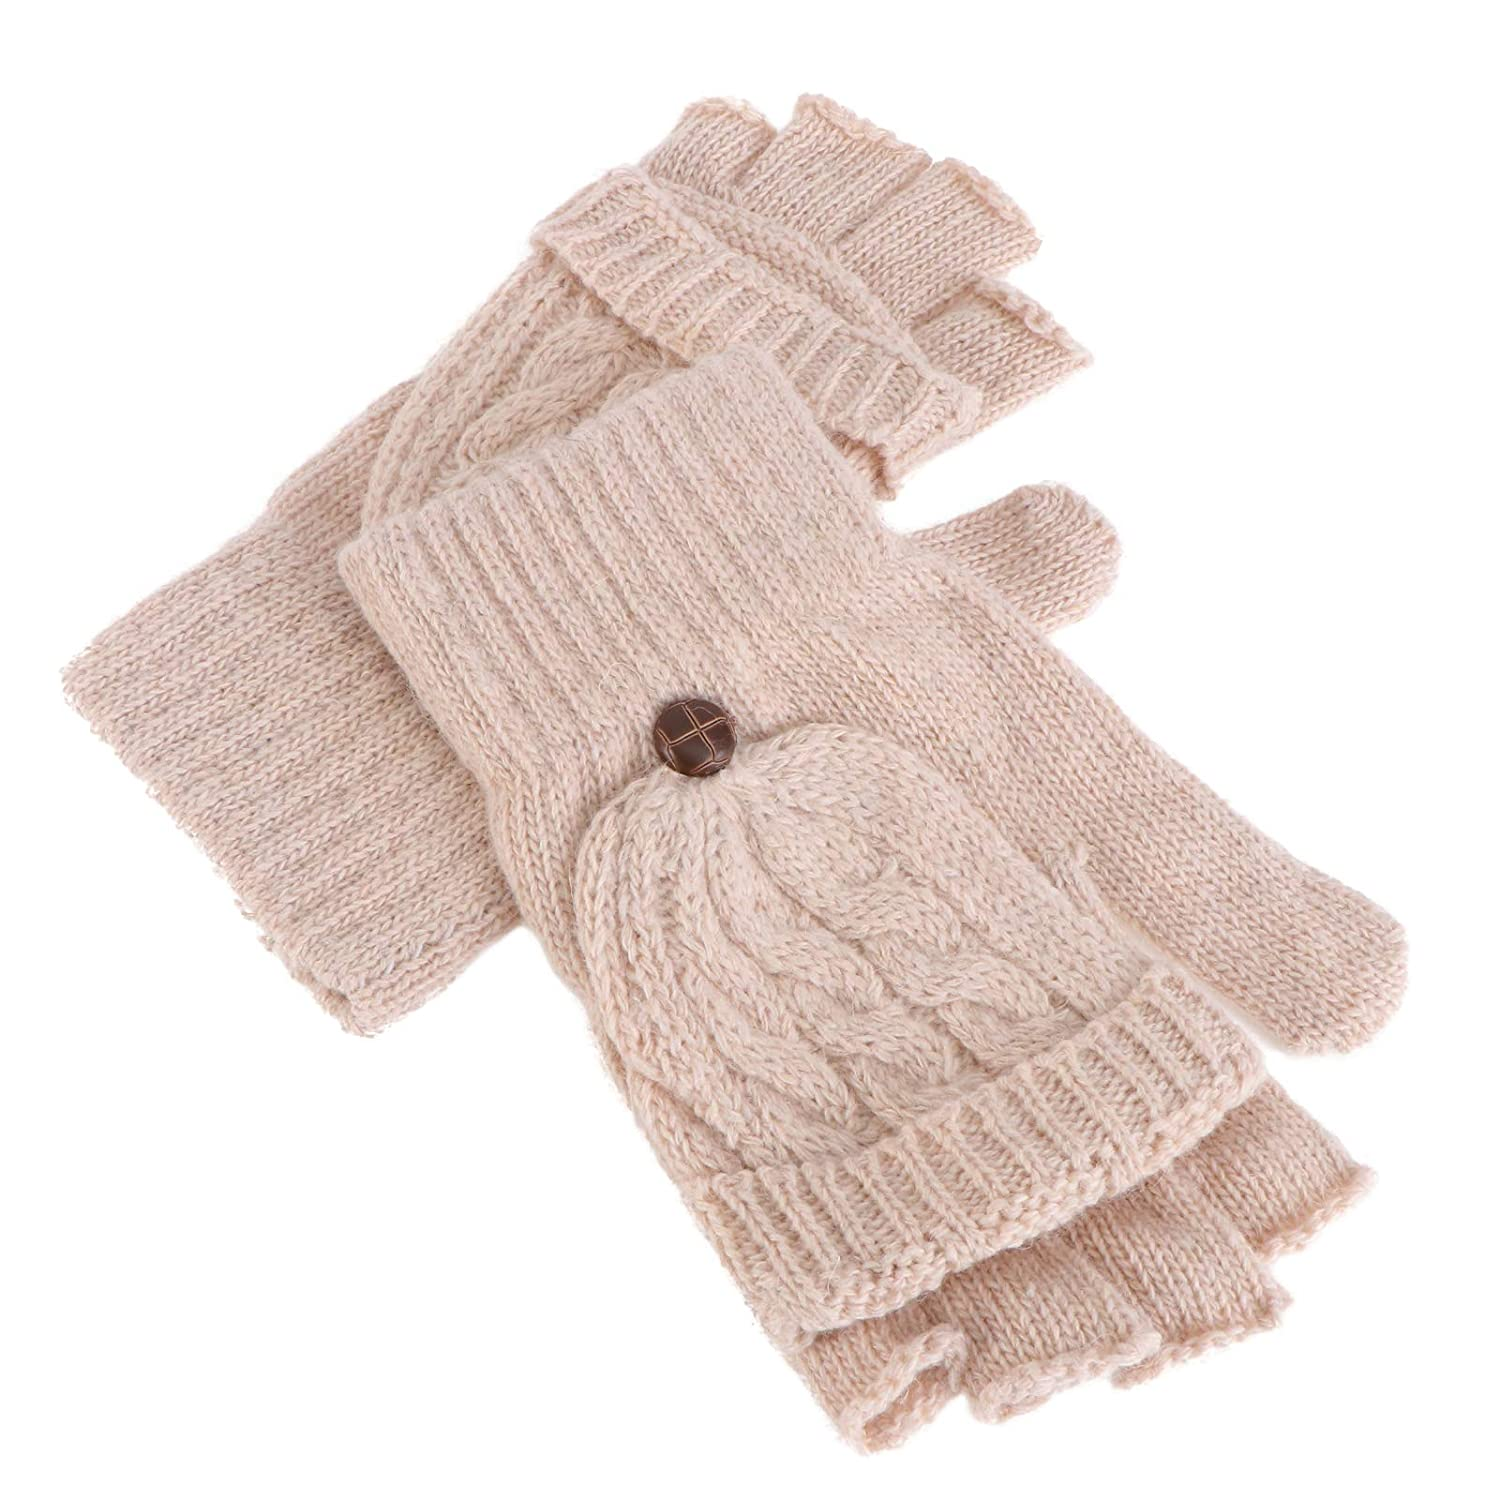 Winter Gloves Winter Knitted Fingerless Gloves With Mitten Cover Convertible Knitted Glove (Beige)